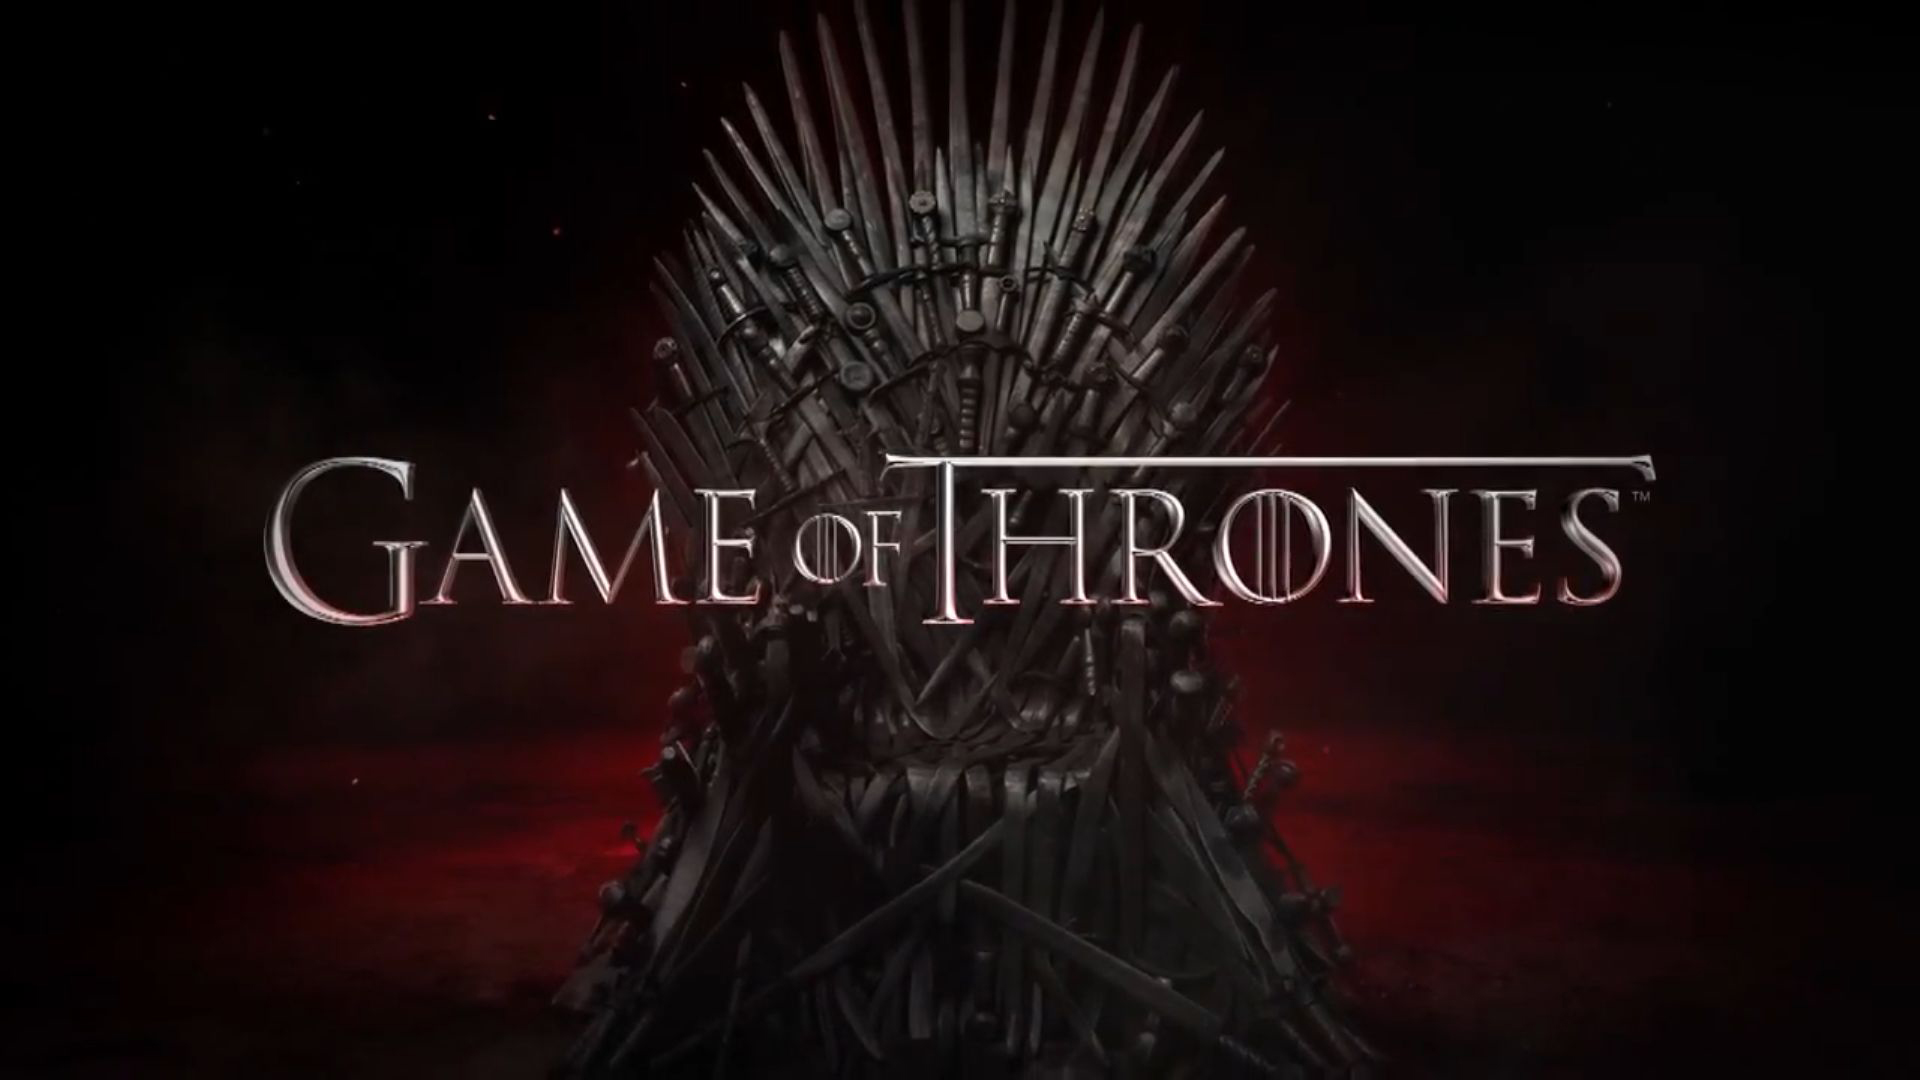 Sling TV will launch HBO in time for the Game of Thrones season